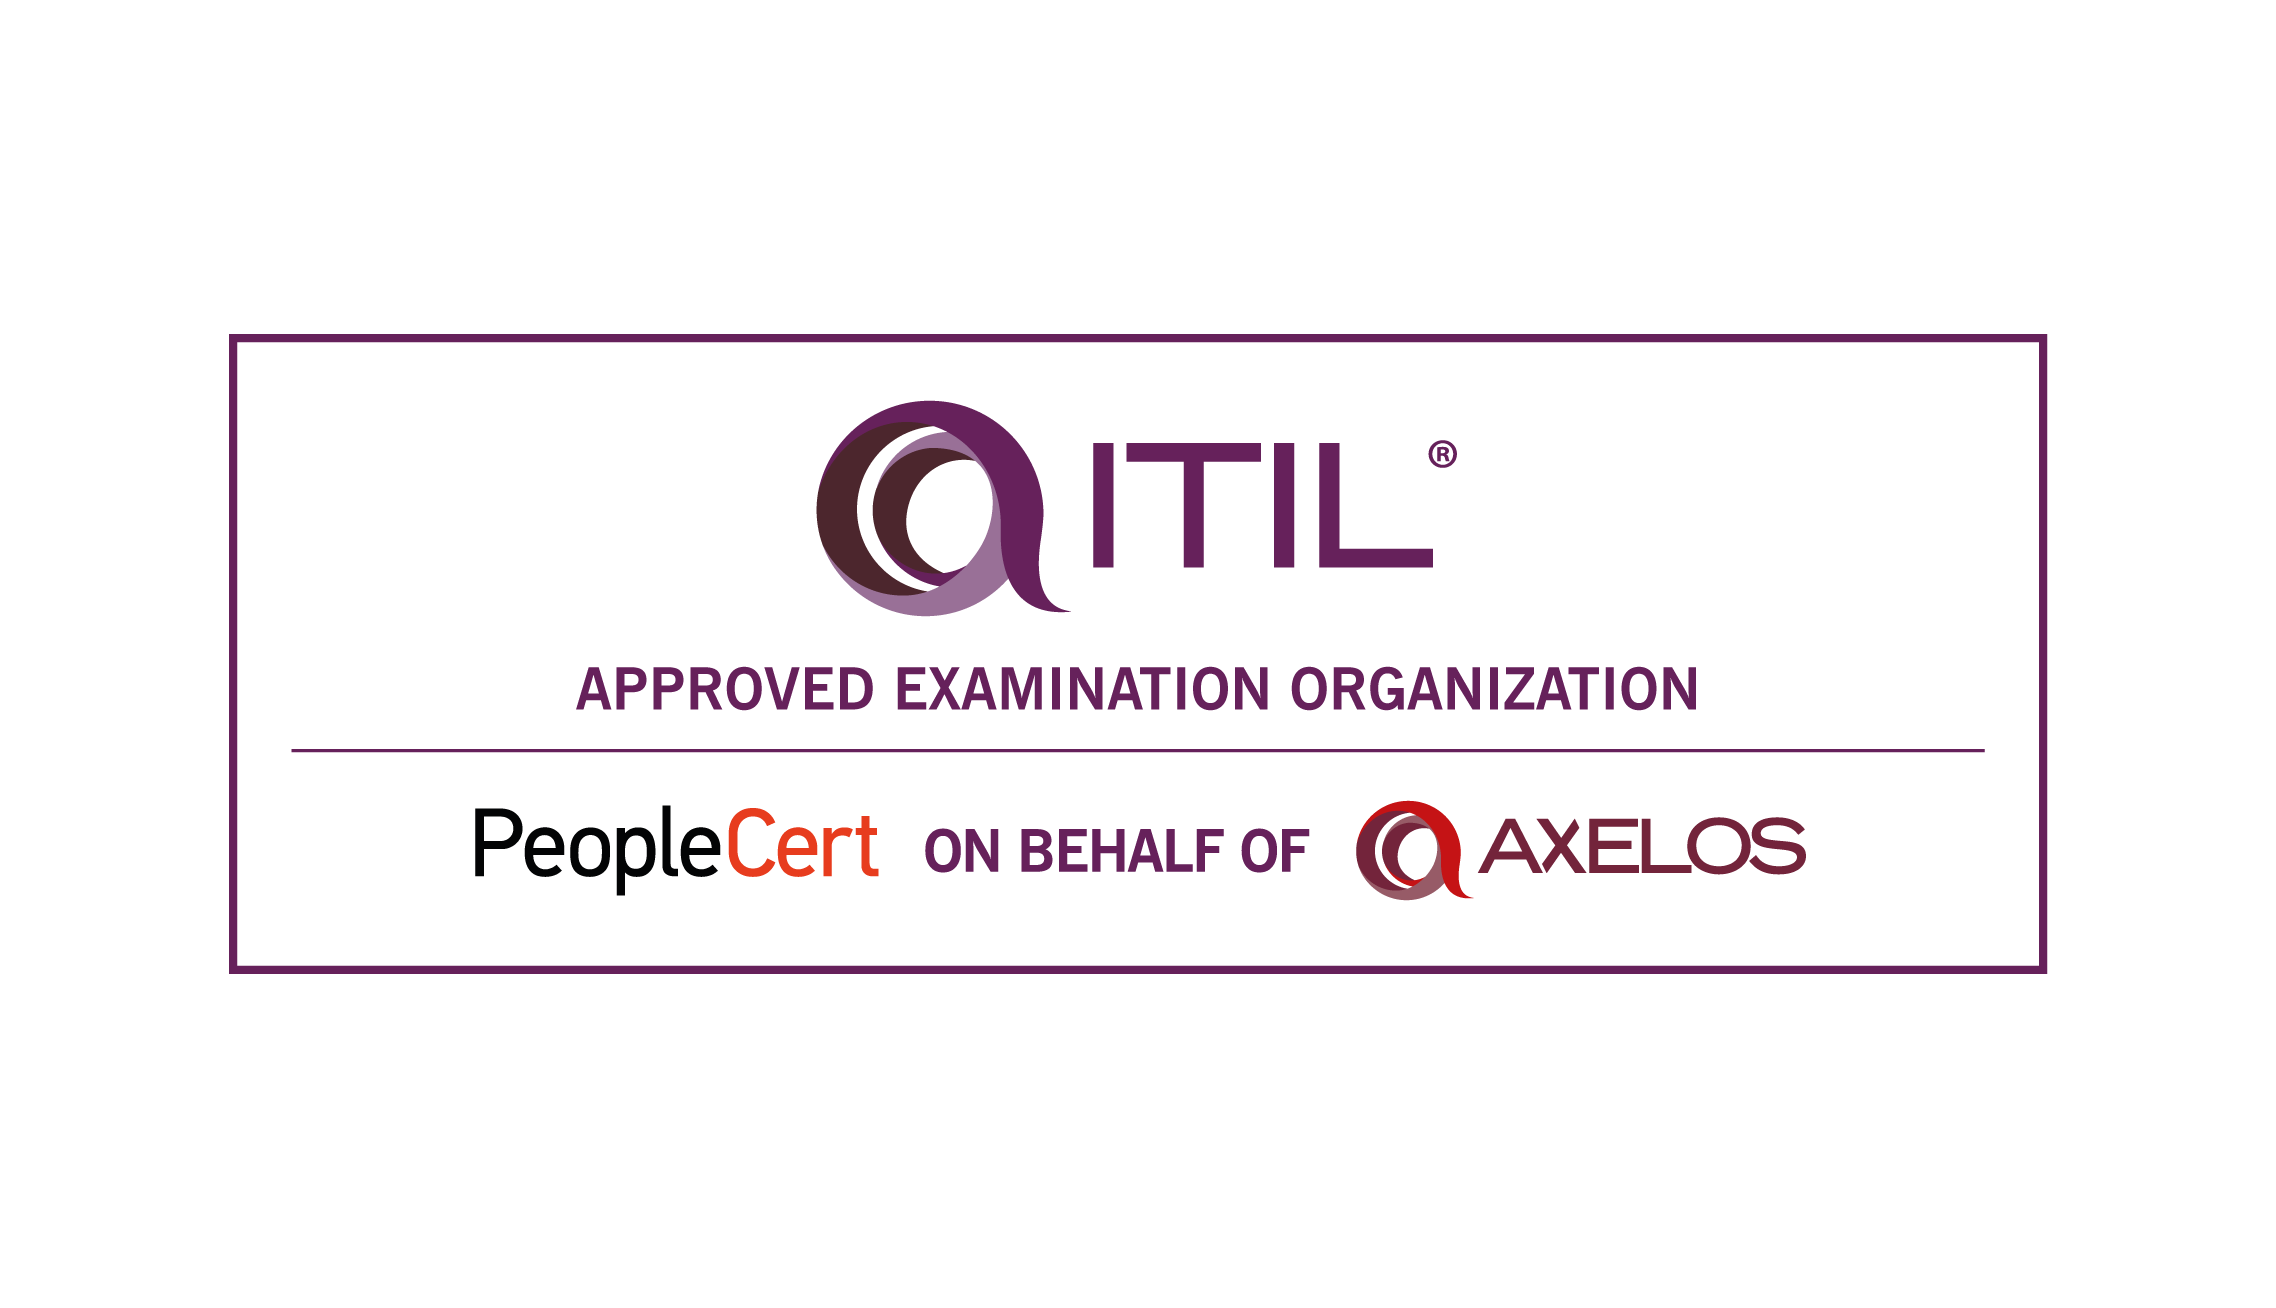 ITIL Certification and Training from New Horizons St. Louis